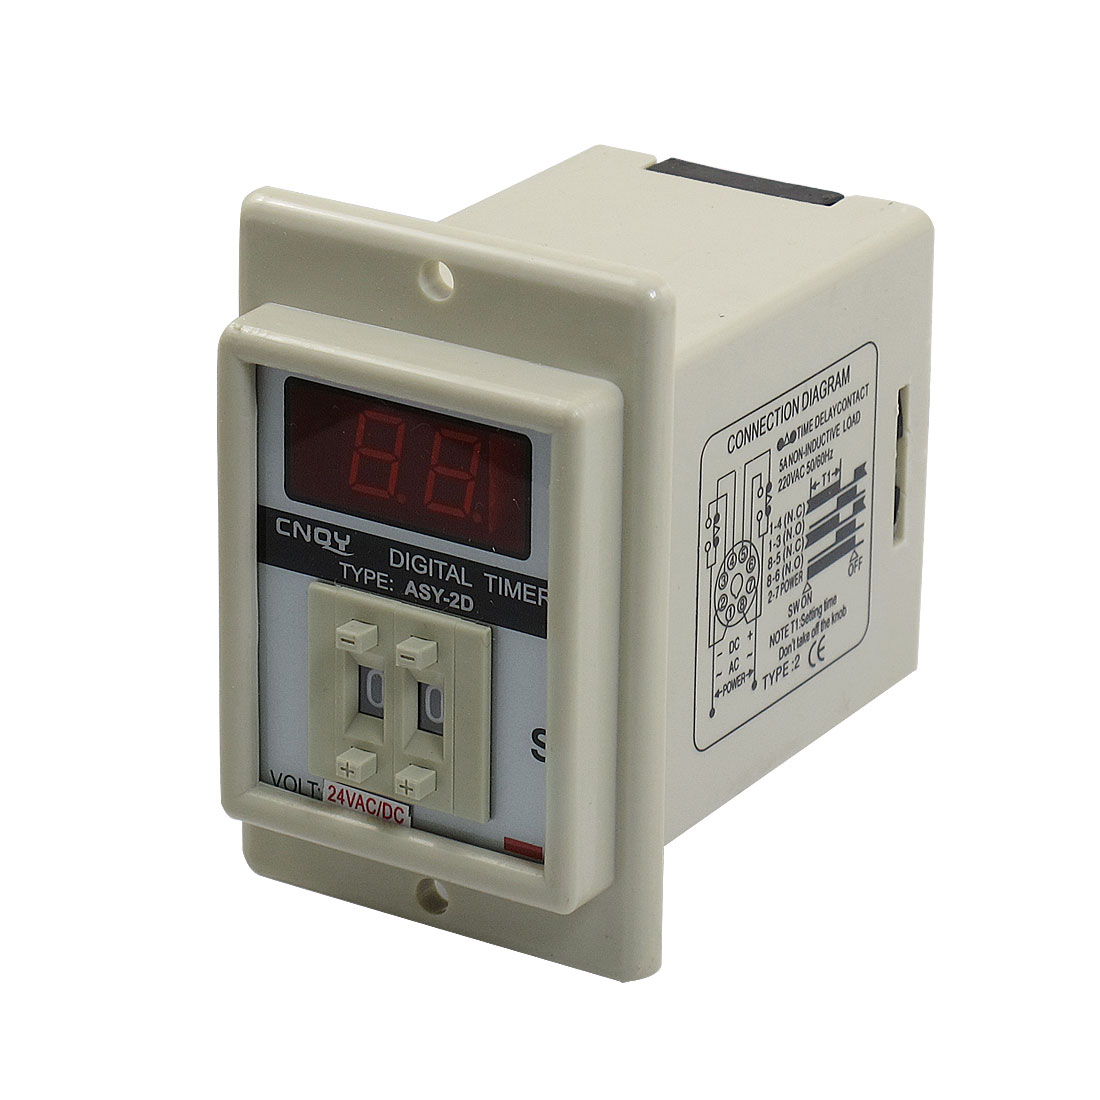 Panel Mount 0.1S-9.9S White Digital Timer Time Delay Relay AC/DC 24V ASY-2D